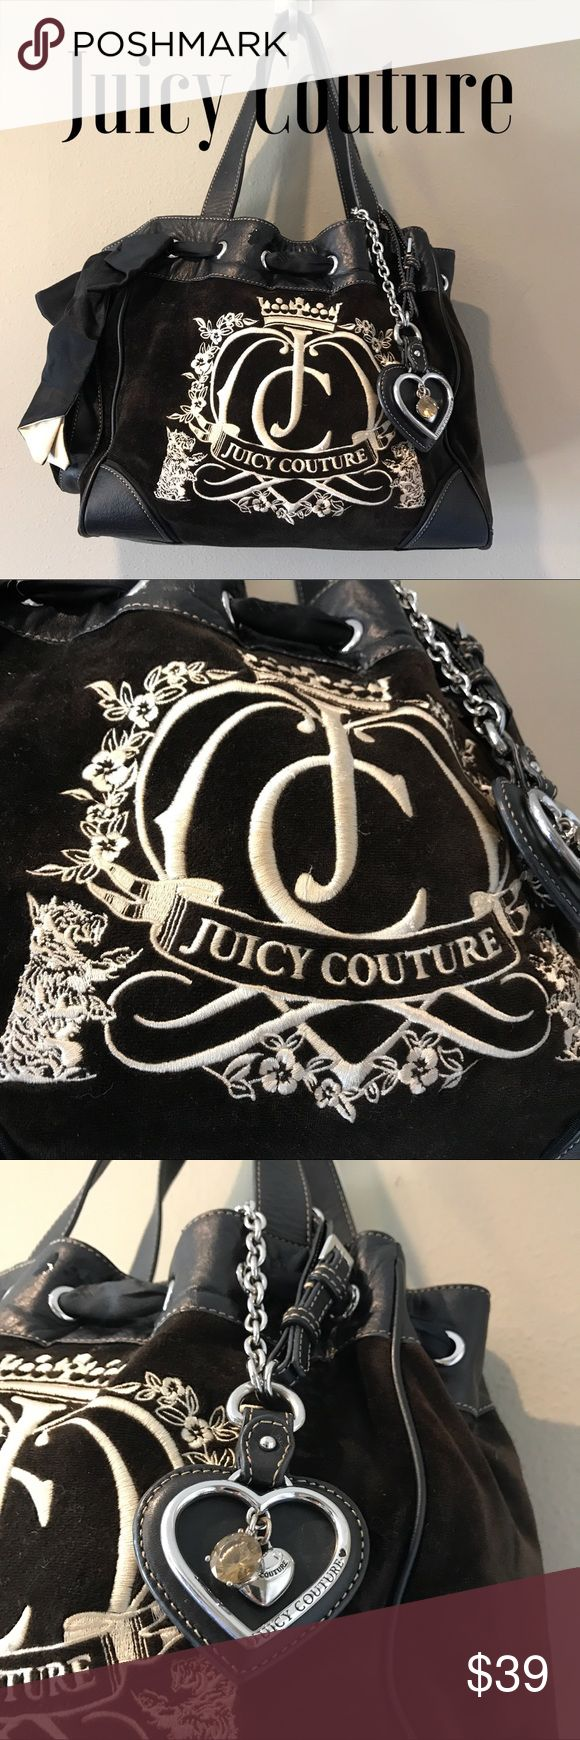 Juicy Couture Velvet/Faux Leather Tote Fabulous is the Juicy Tradition, this lovely Juicy has all the bells and Whistles.  Logo hardware, Velvet Body with faux leather trim. Some minor wearing to the handles otherwise in very good condition.  Small mirror inside is pretty scratched up but still a cute little accessory. Juicy Couture Bags Totes